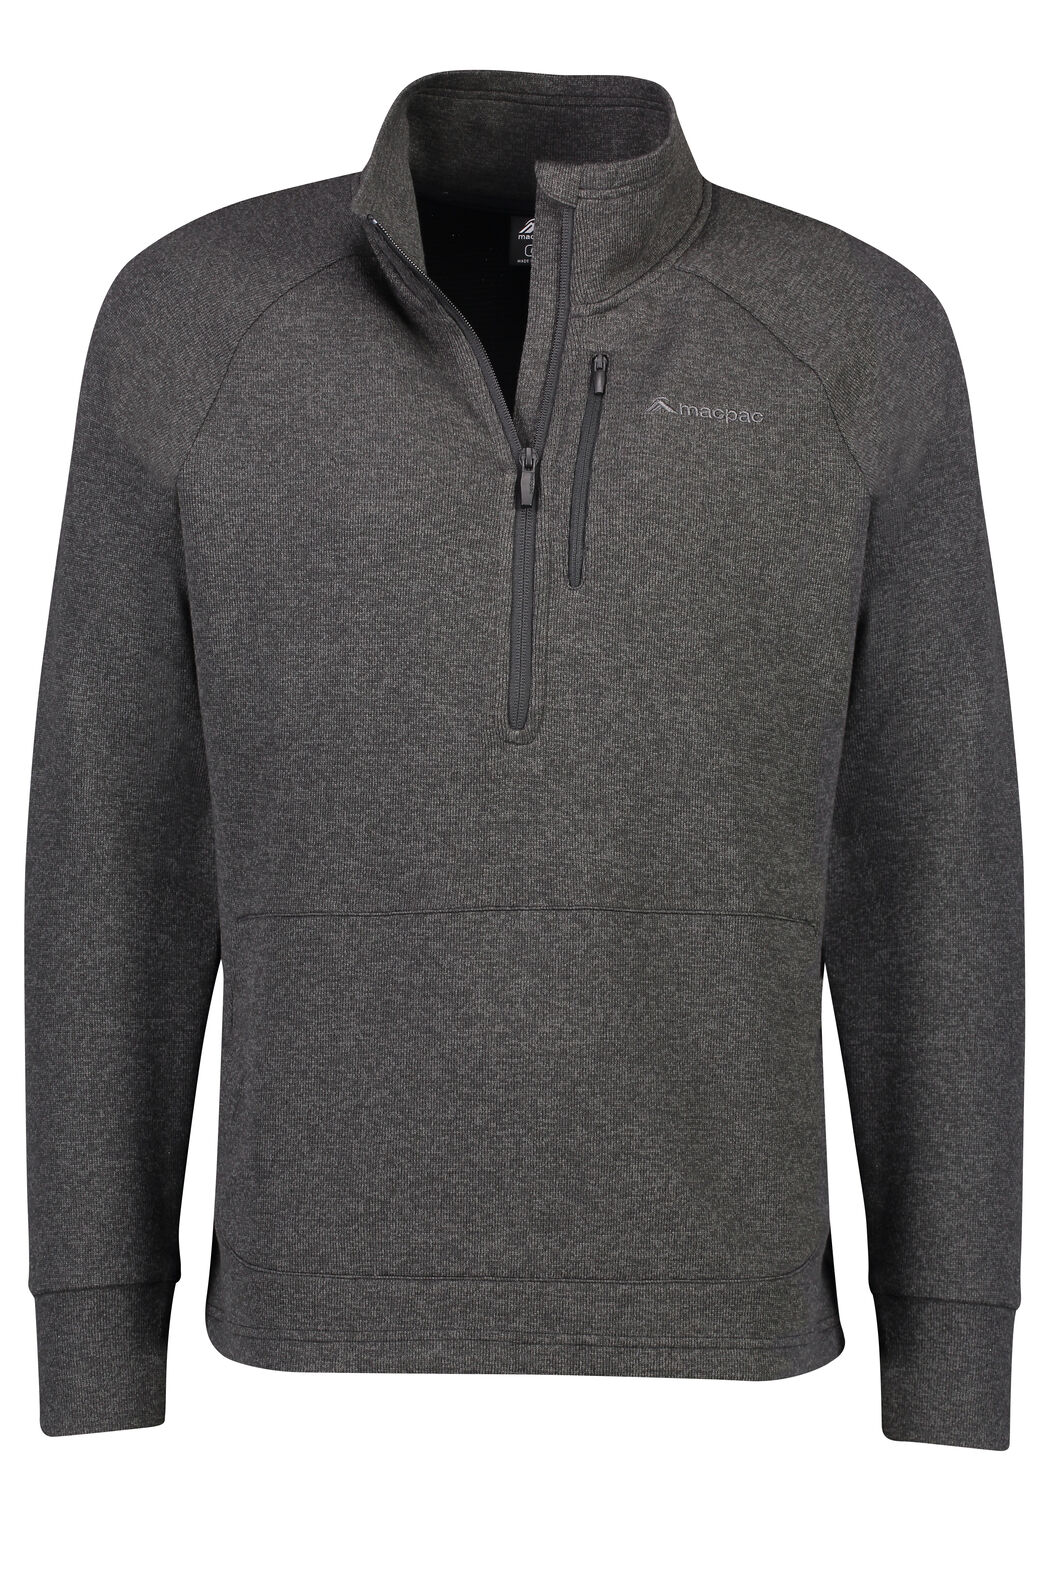 Vertex Half Zip - Men's, Charcoal Marle, hi-res